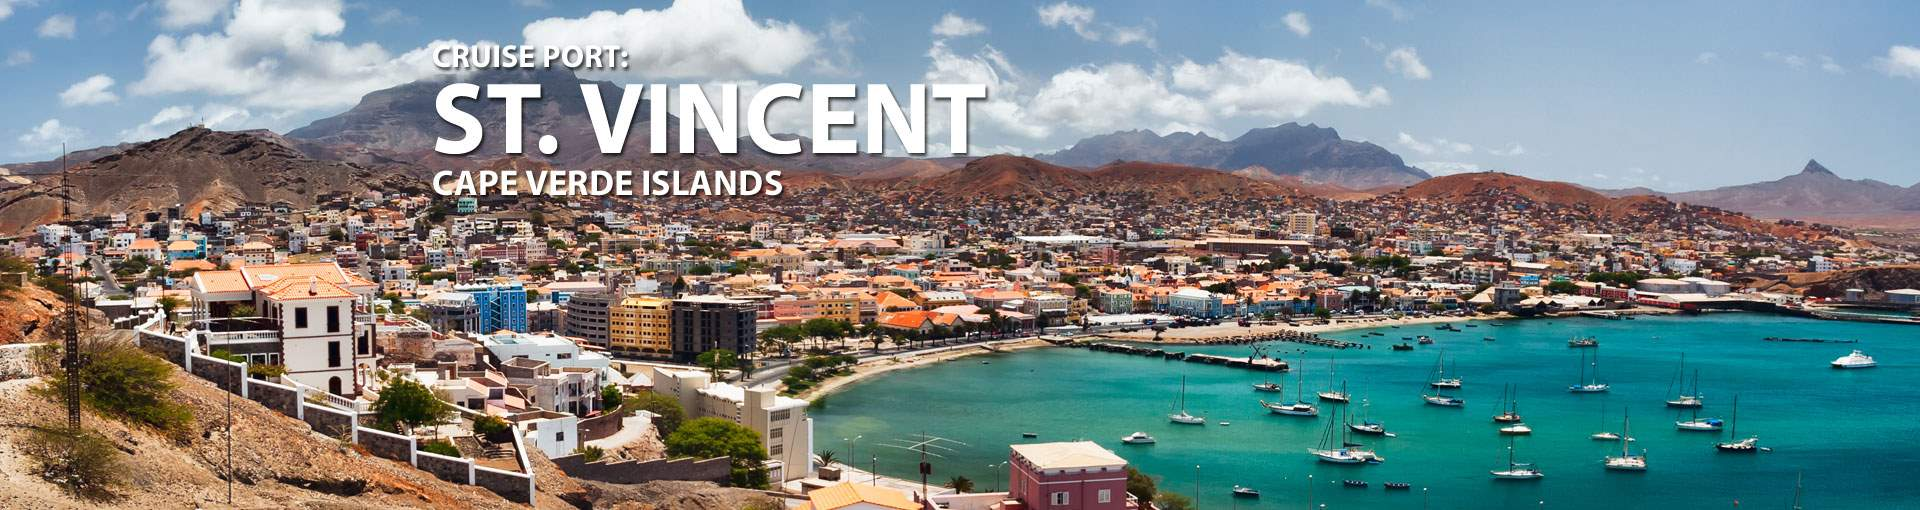 Cruises to St. Vincent, Cape Verde Islands